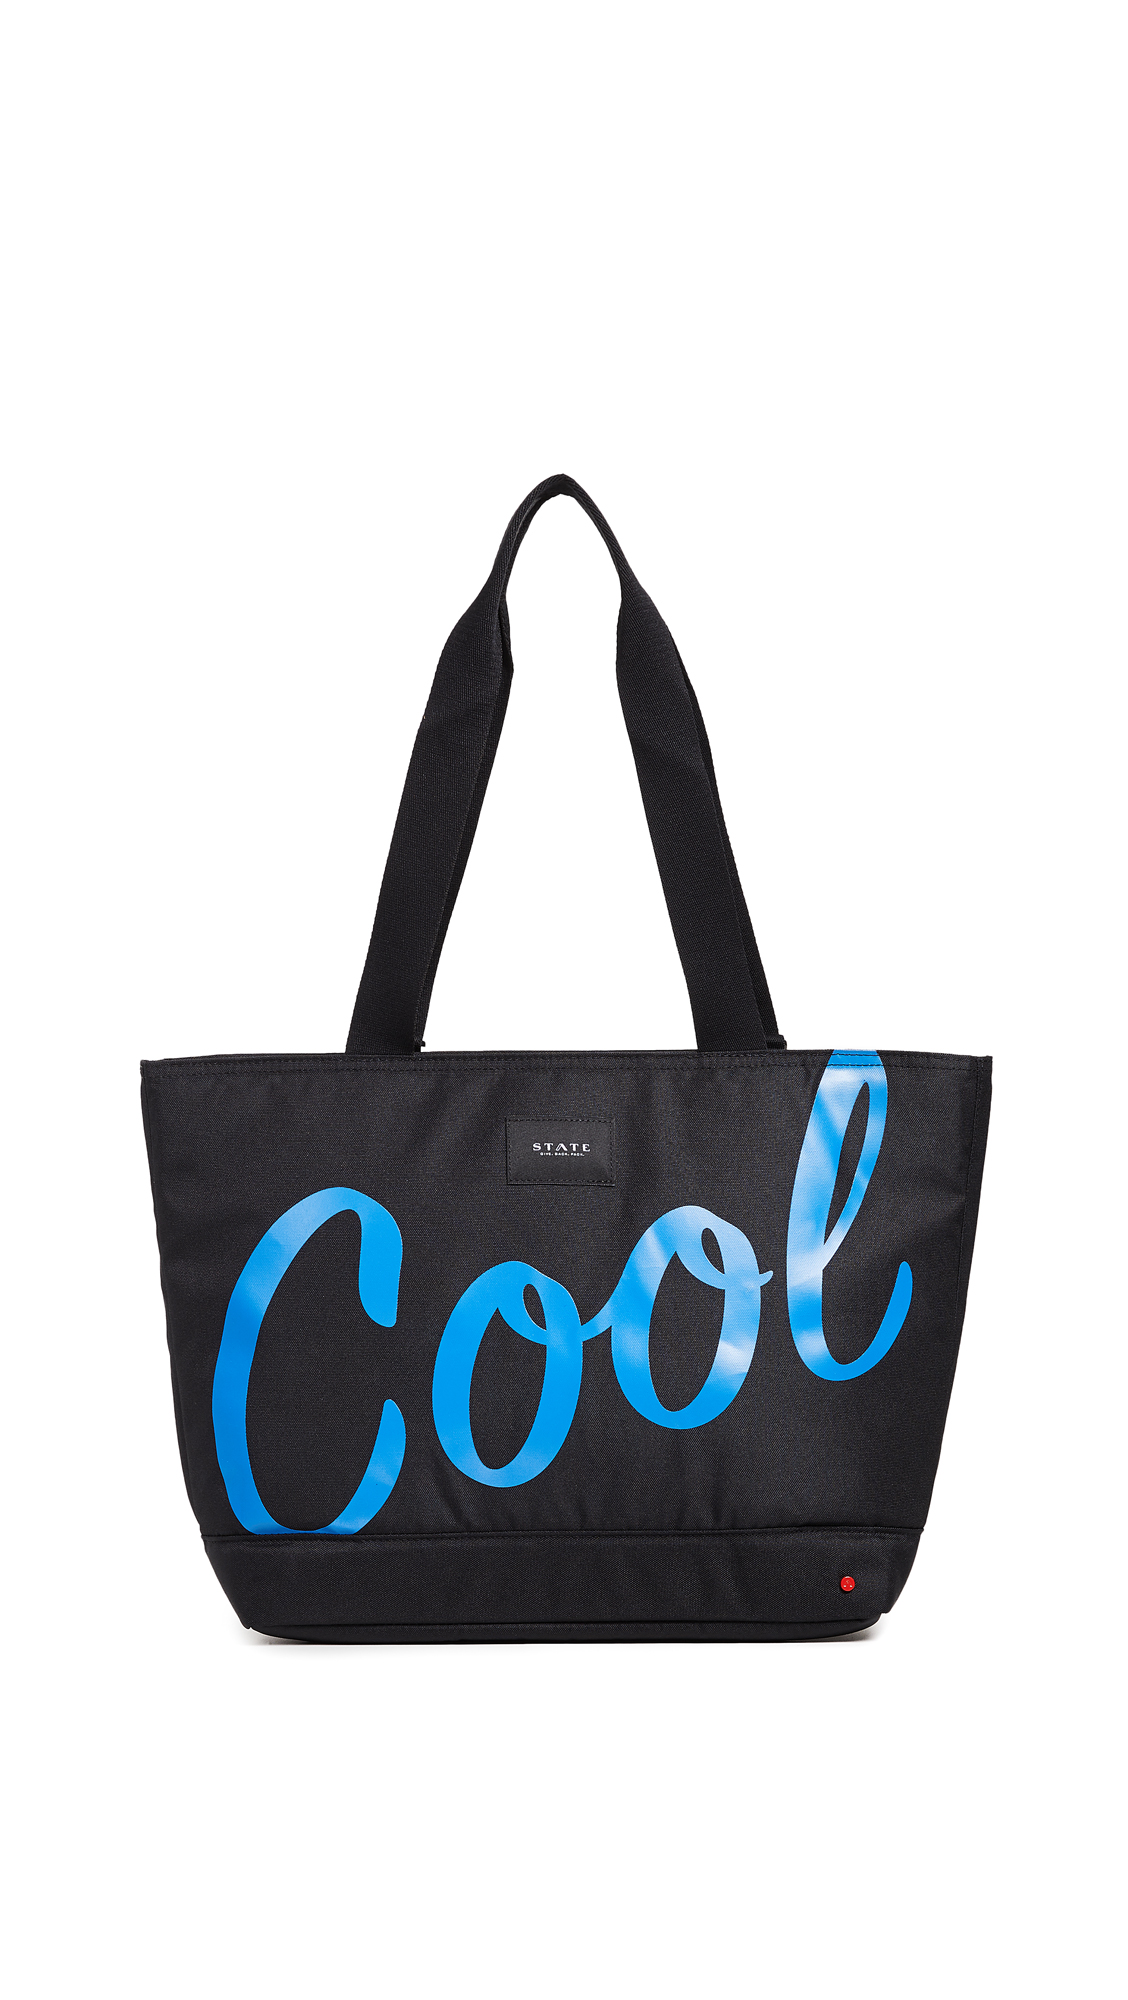 INSULATED CHARLES TOTE